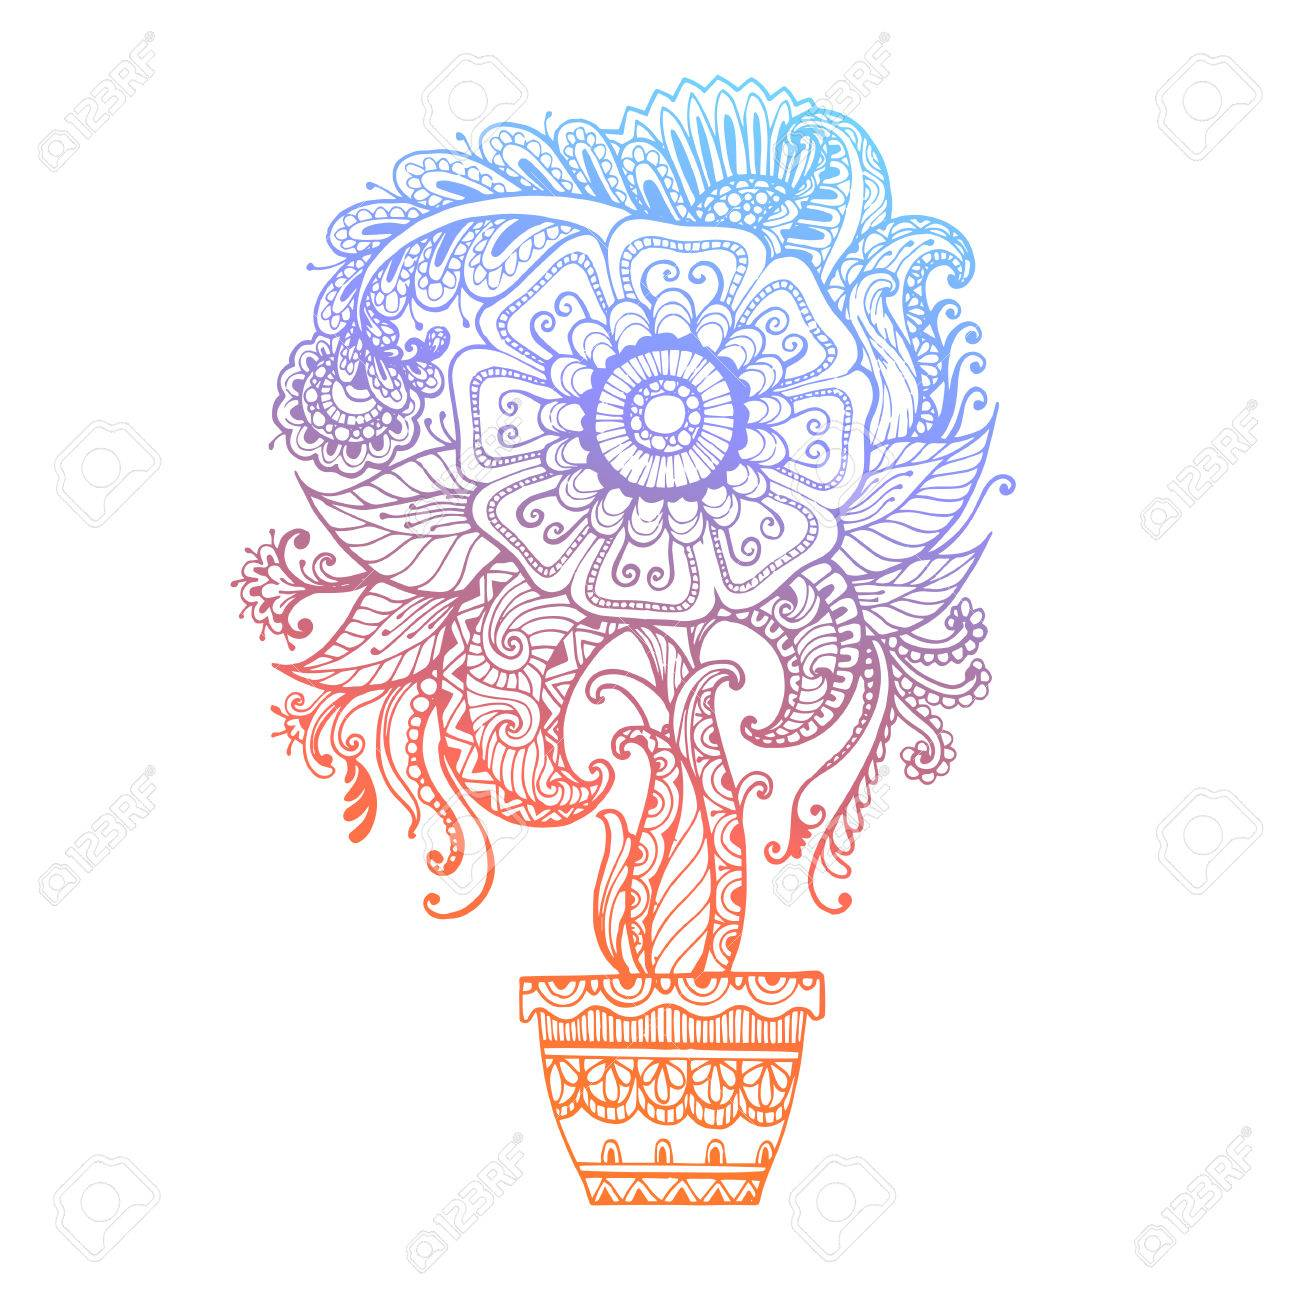 Hand Drawn Abstract Henna Mehndi Flowers And Paisley Doodle Vector